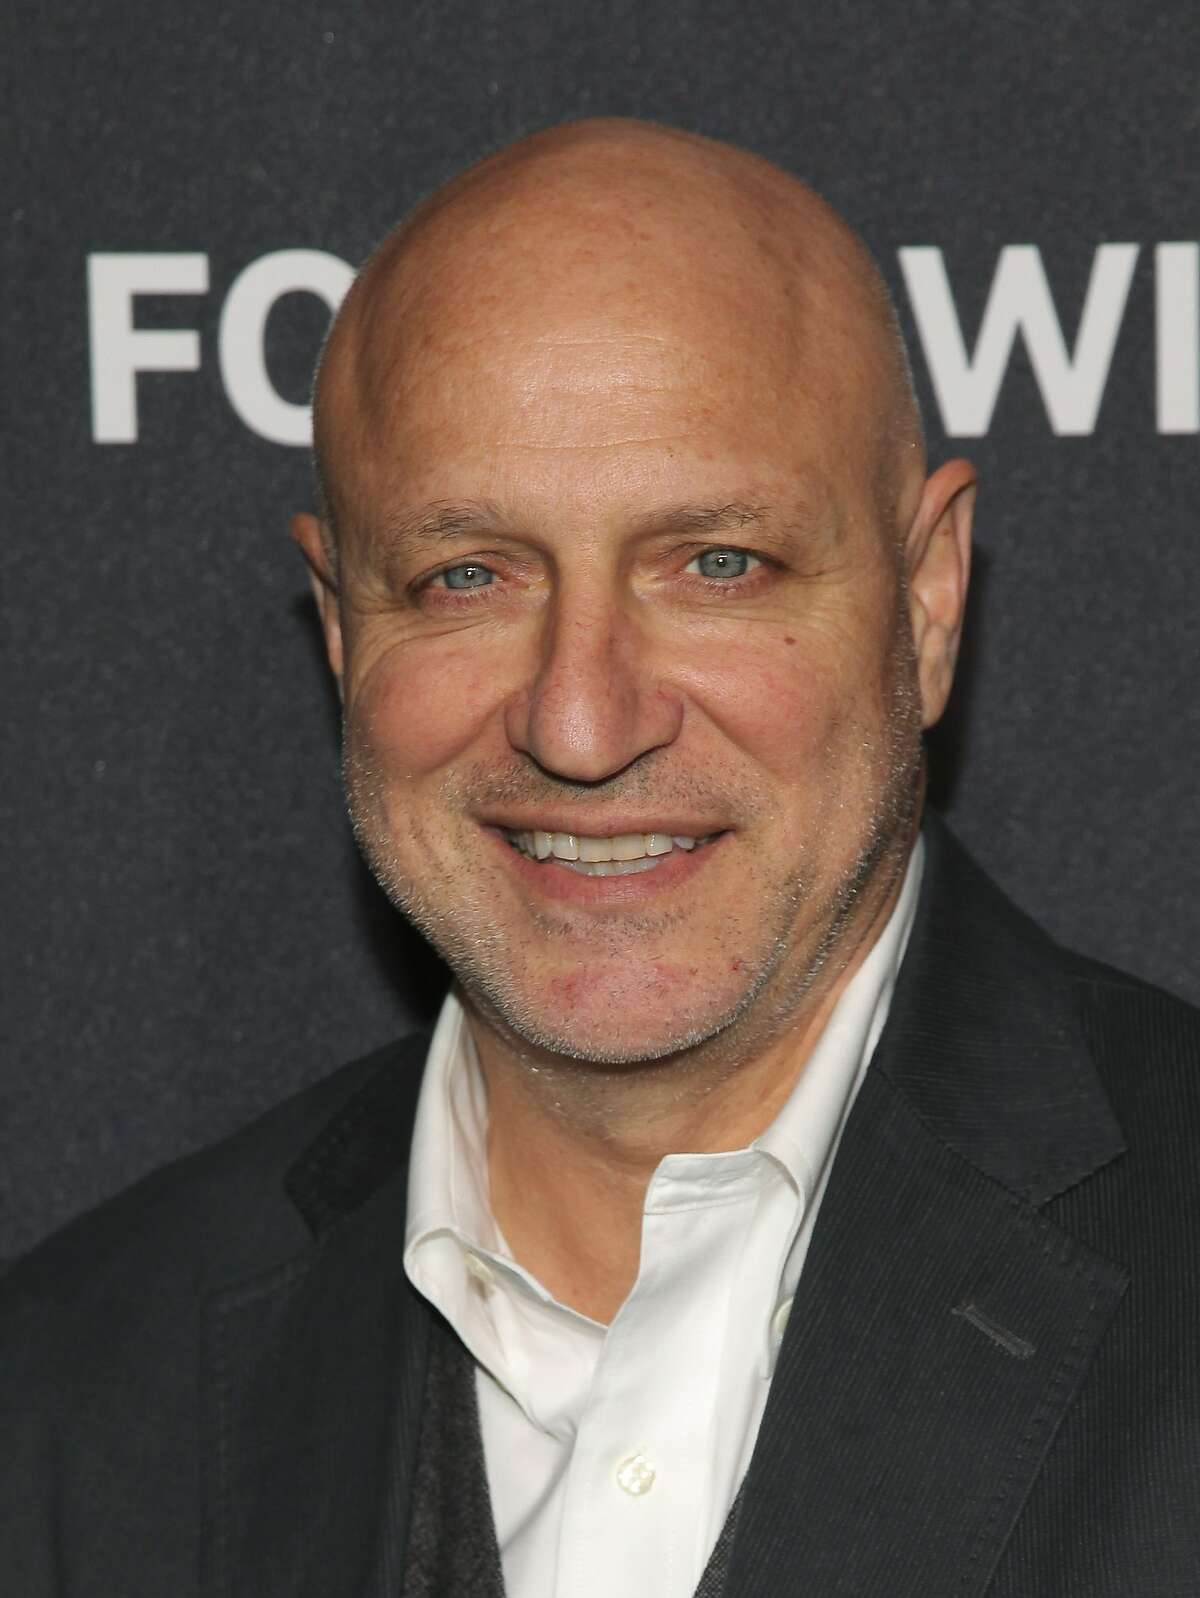 In this April 5, 2016, file photo, Tom Colicchio attends the Food & Wine 2016 Best New Chefs Party at Event Block in New York.